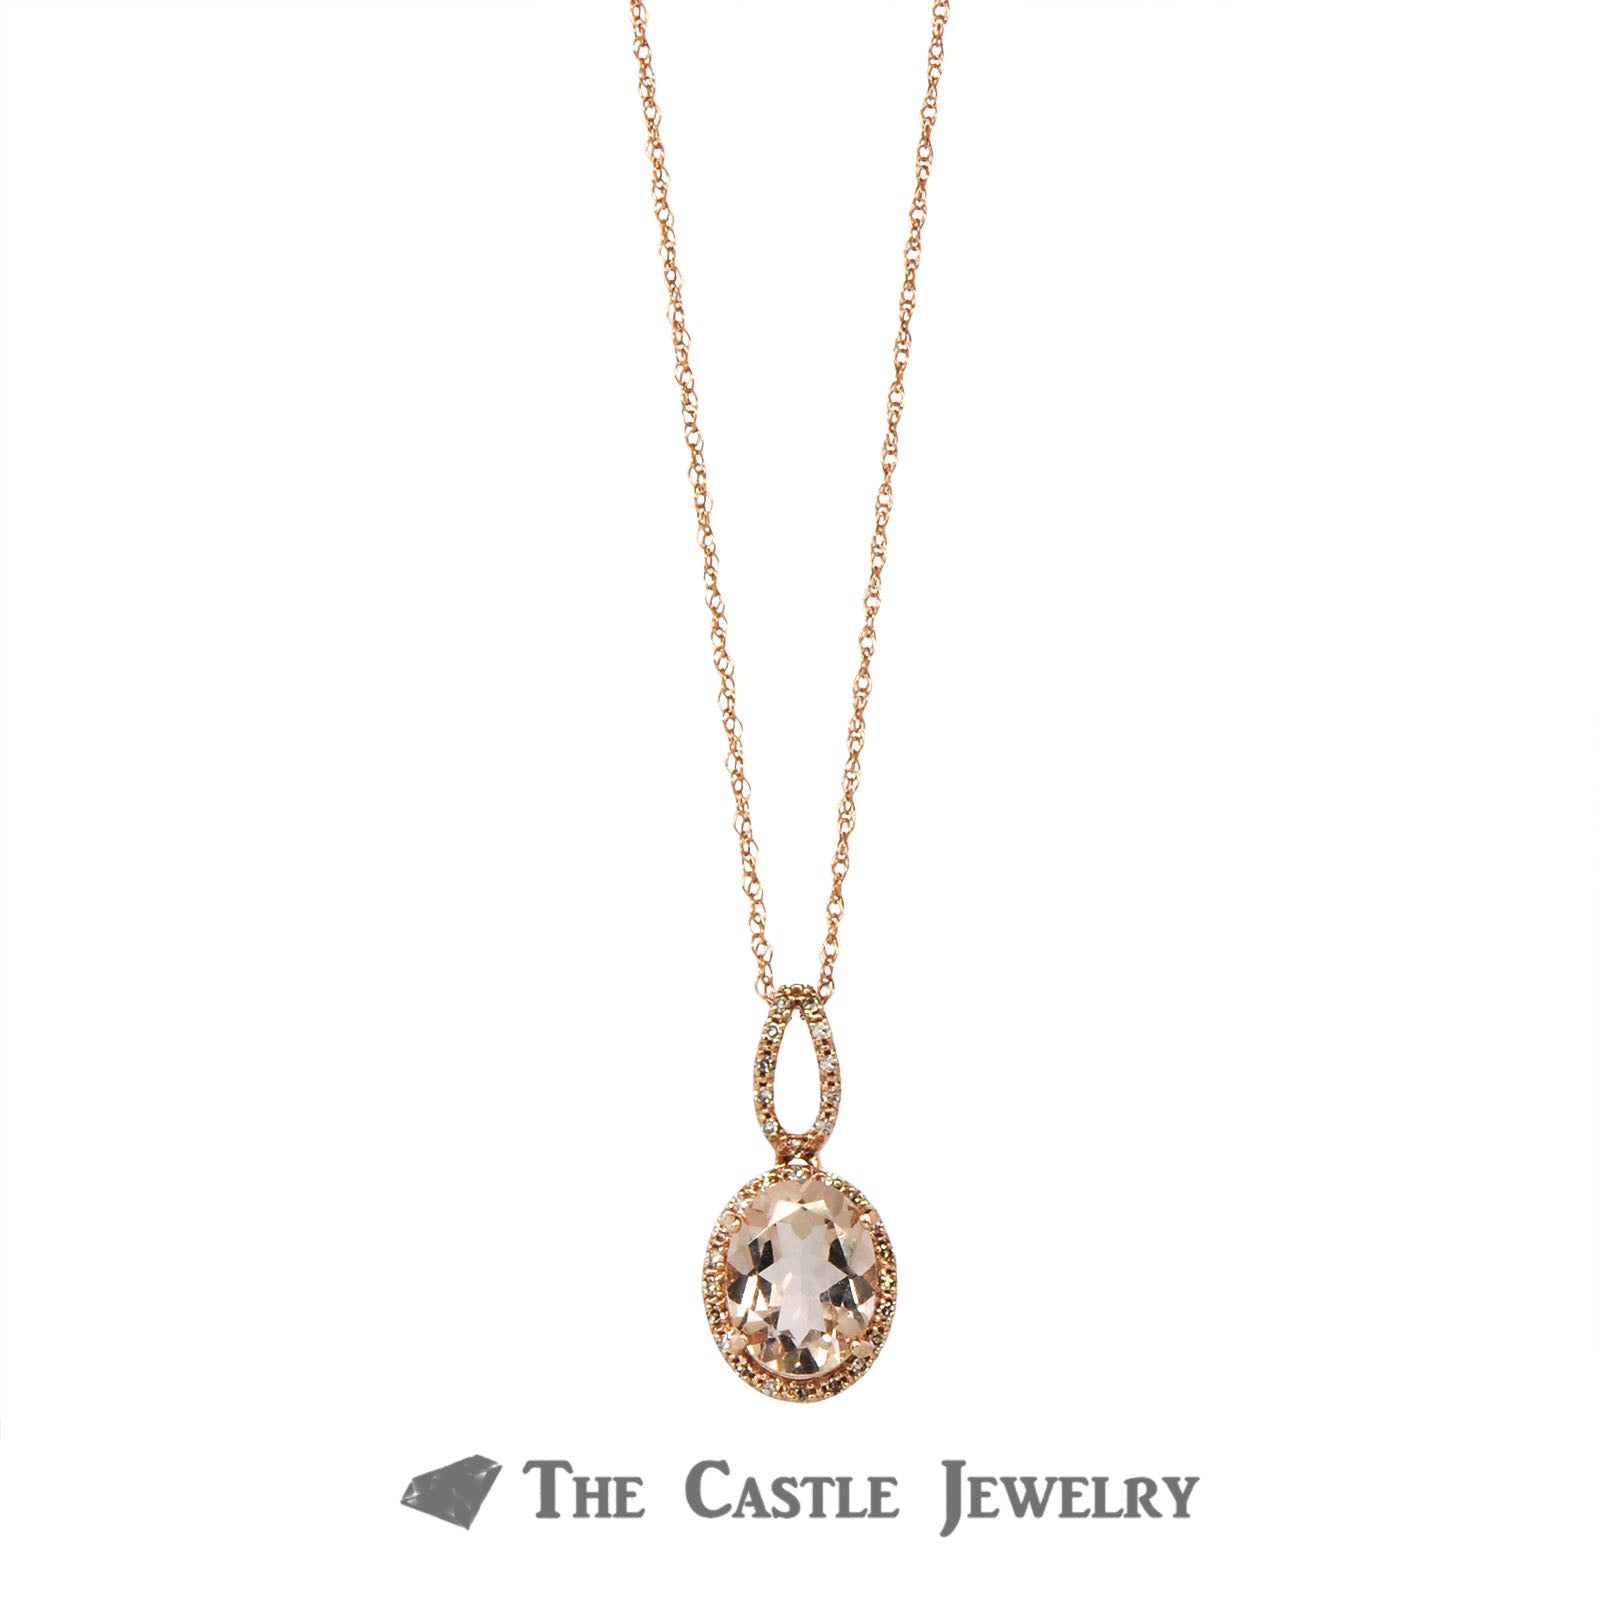 Oval Morganite Necklace with Diamond Halo & Bail in 14K Rose Gold